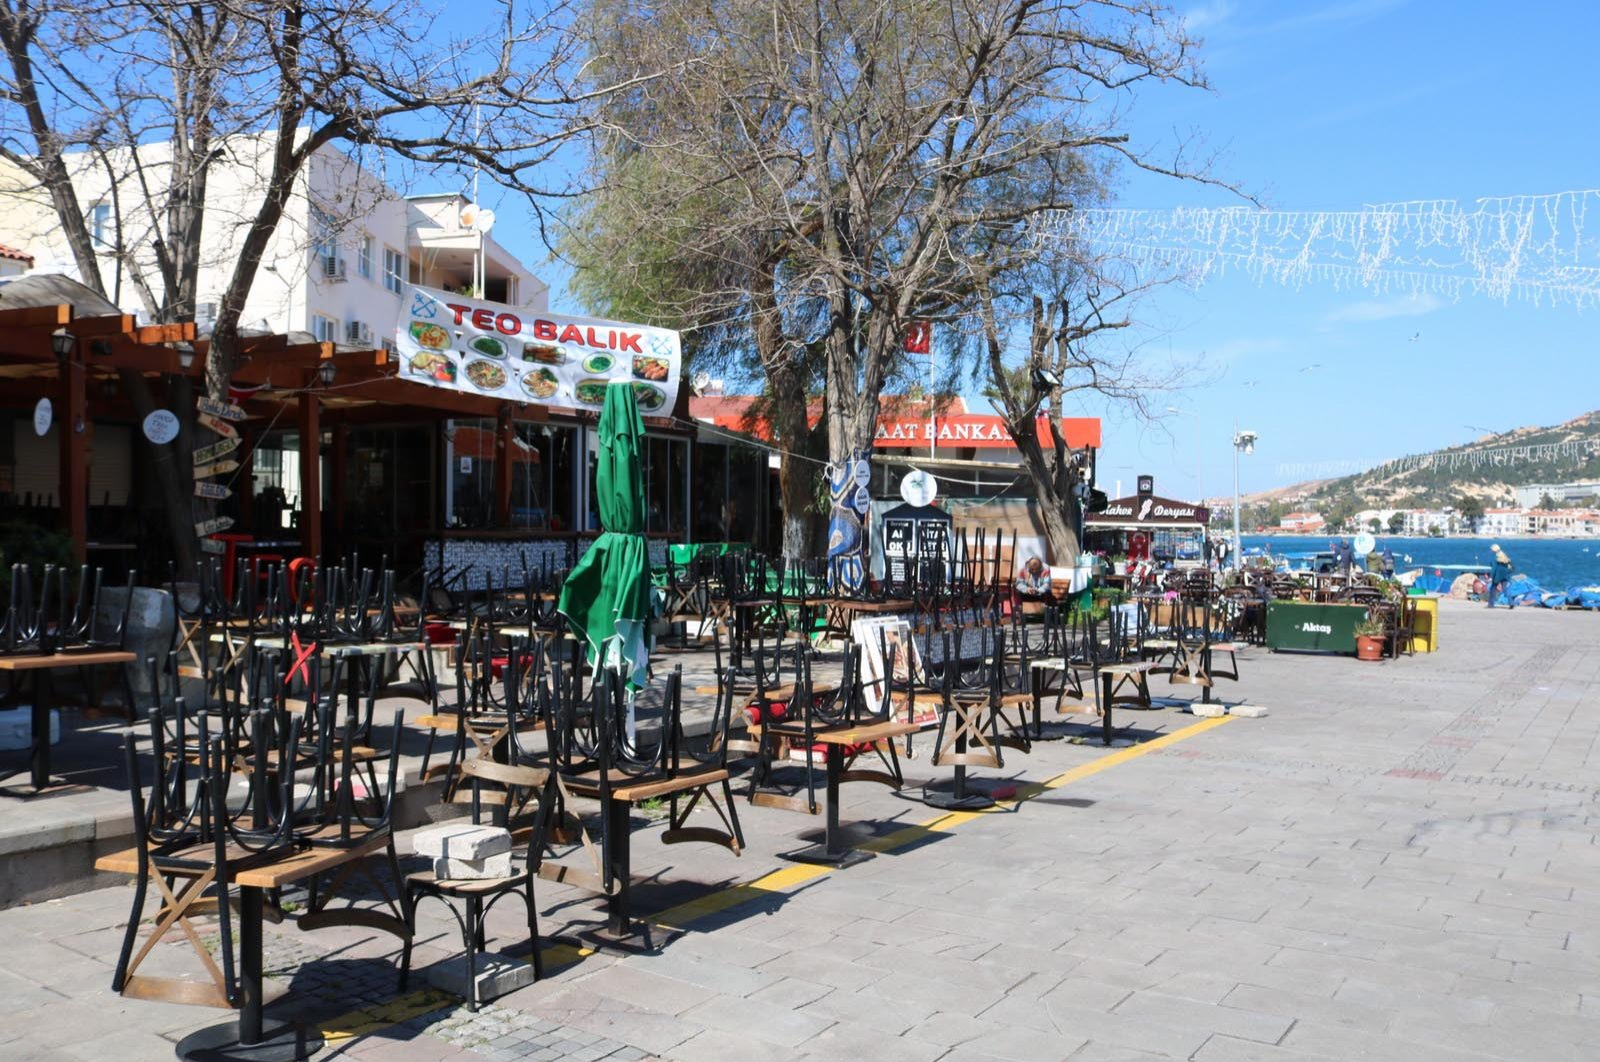 İzmir's touristic Foça district on March 18. Most public places remain empty due to fears of the COVID-19 epidemic.